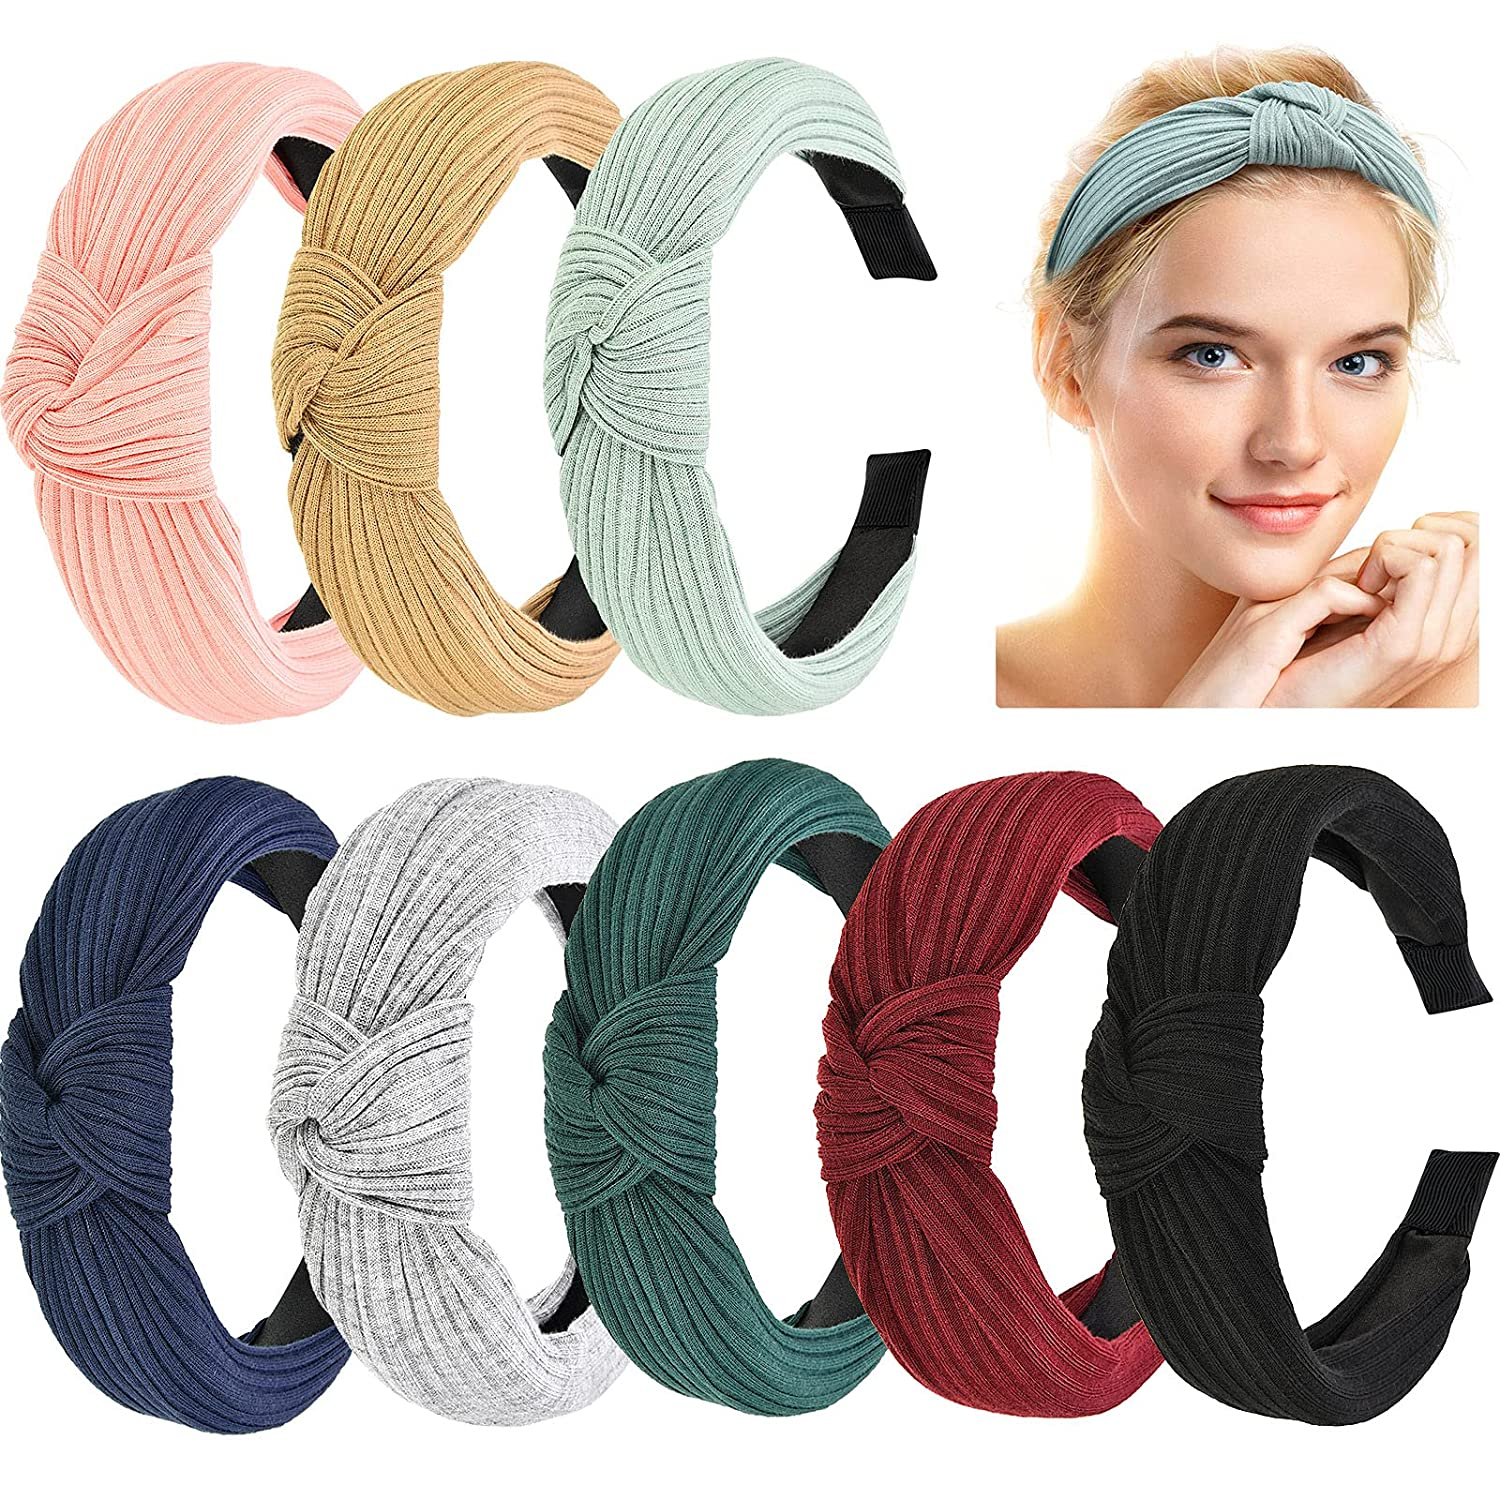 Details about  /Womens Headband Hairband Bow Knot Cross Tie Velvet Headwrap Hair Band Hoop